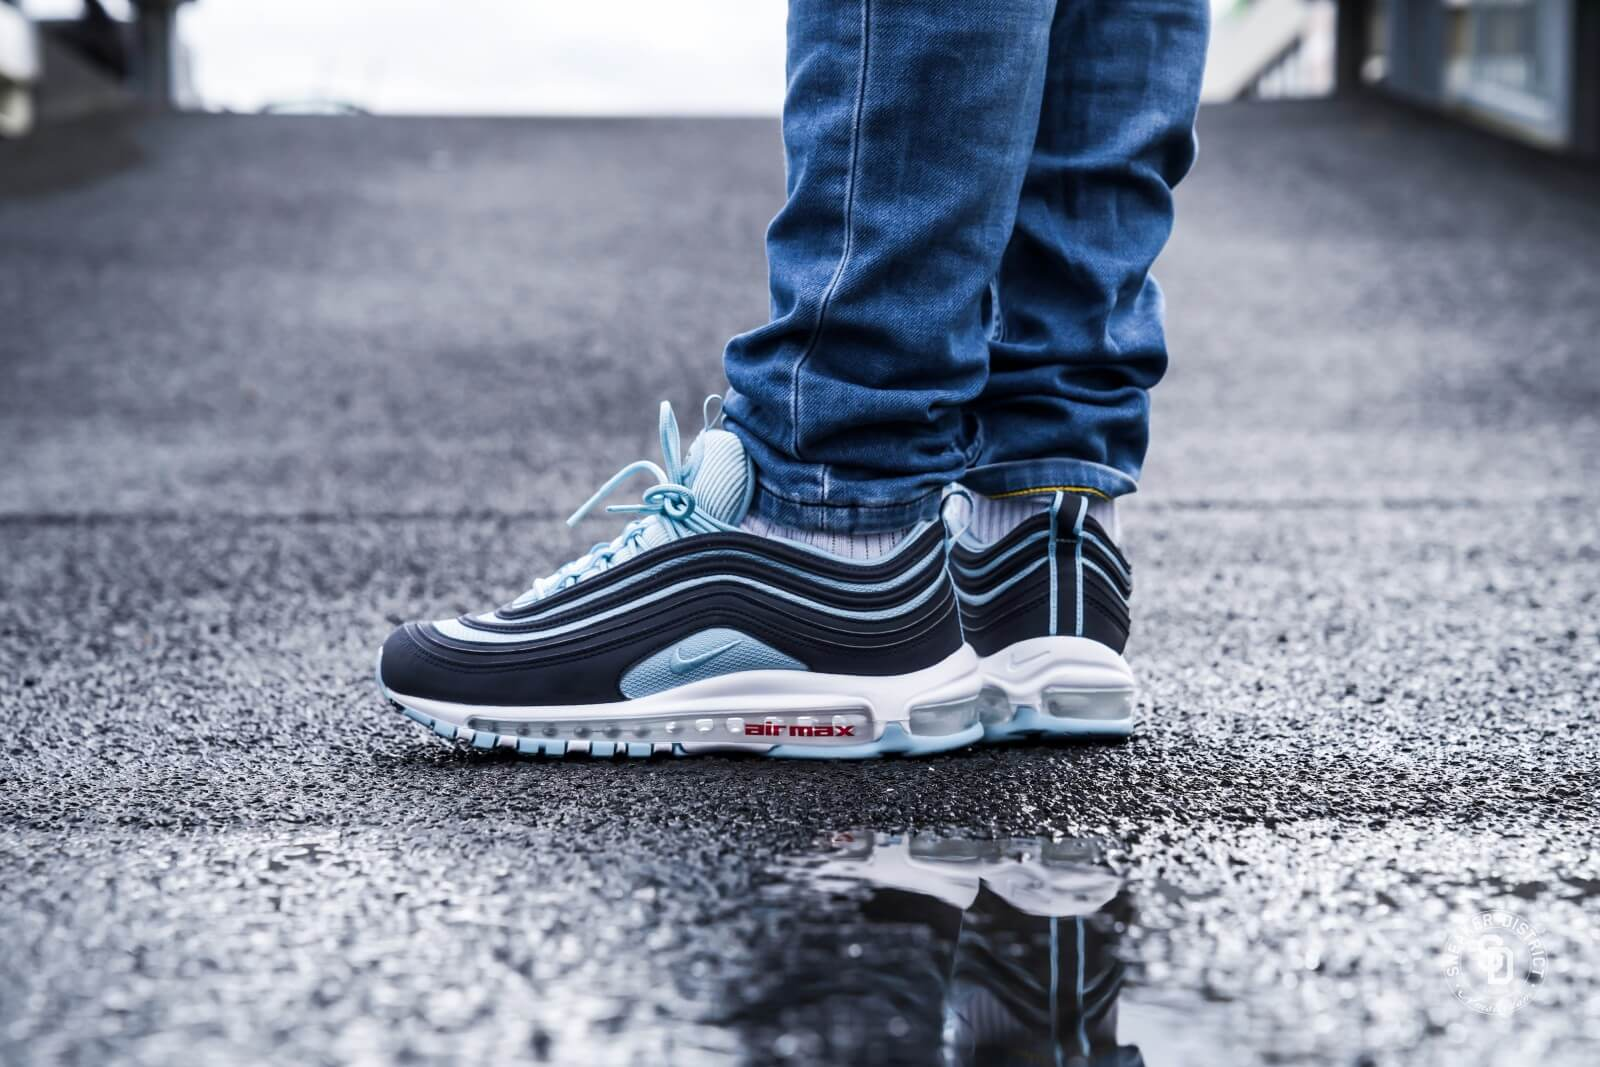 Nike Air Max 97 Premium Dark obsidianOcean bliss University red AV7025 400